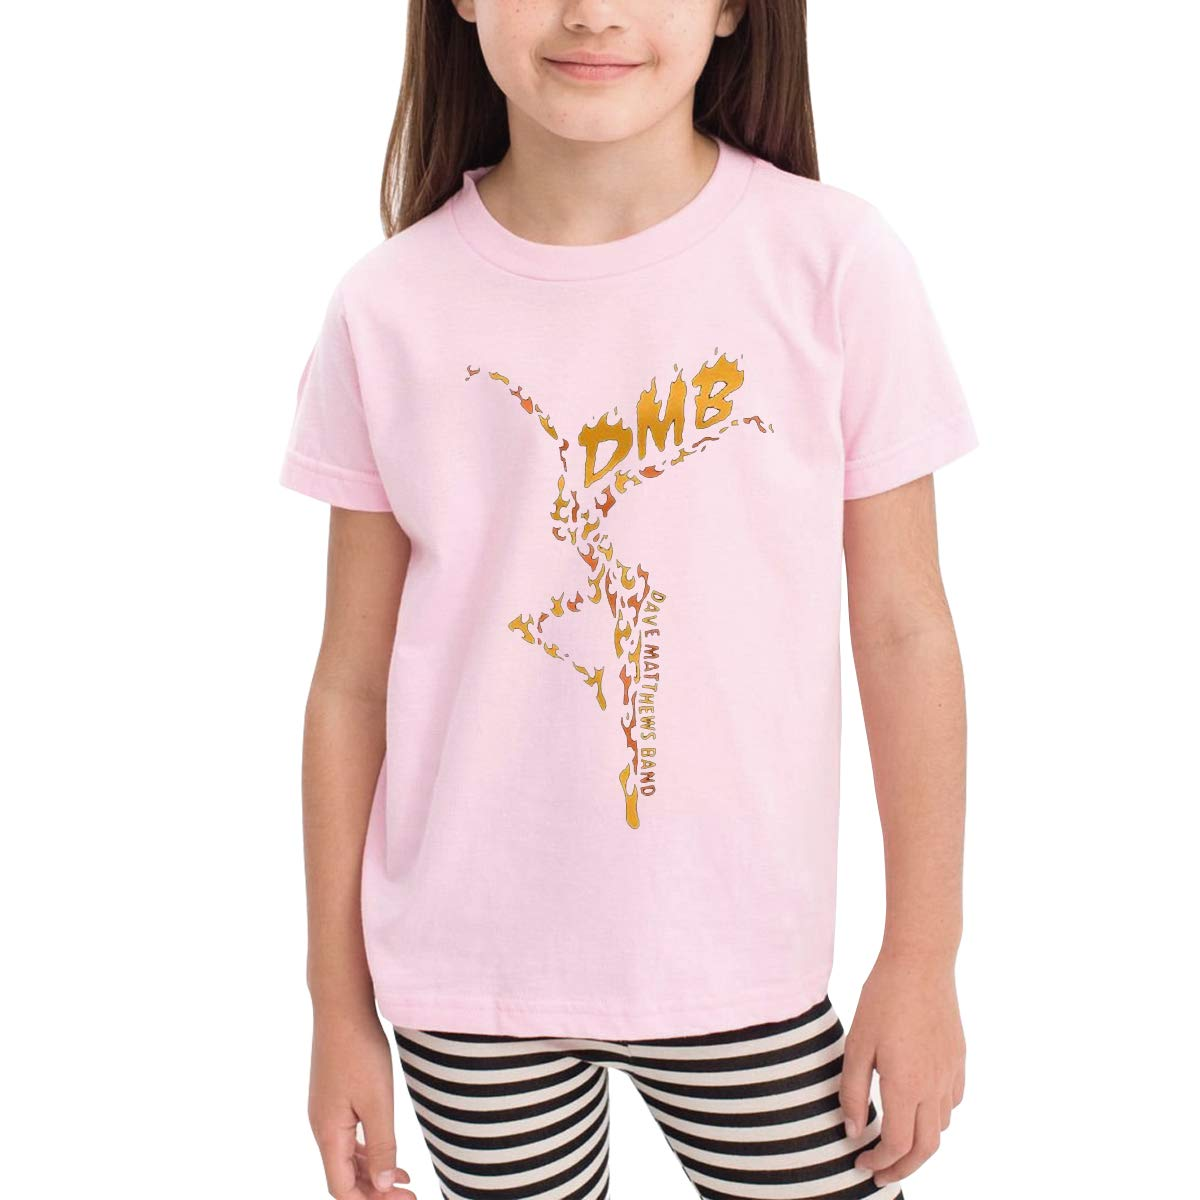 Patricia FordT 6-24 Month Baby T-Shirt Loose Self-Cultivation 2-6 Year Old Childrens T-Shirt Dave Matthews Band Logo Pink 2T